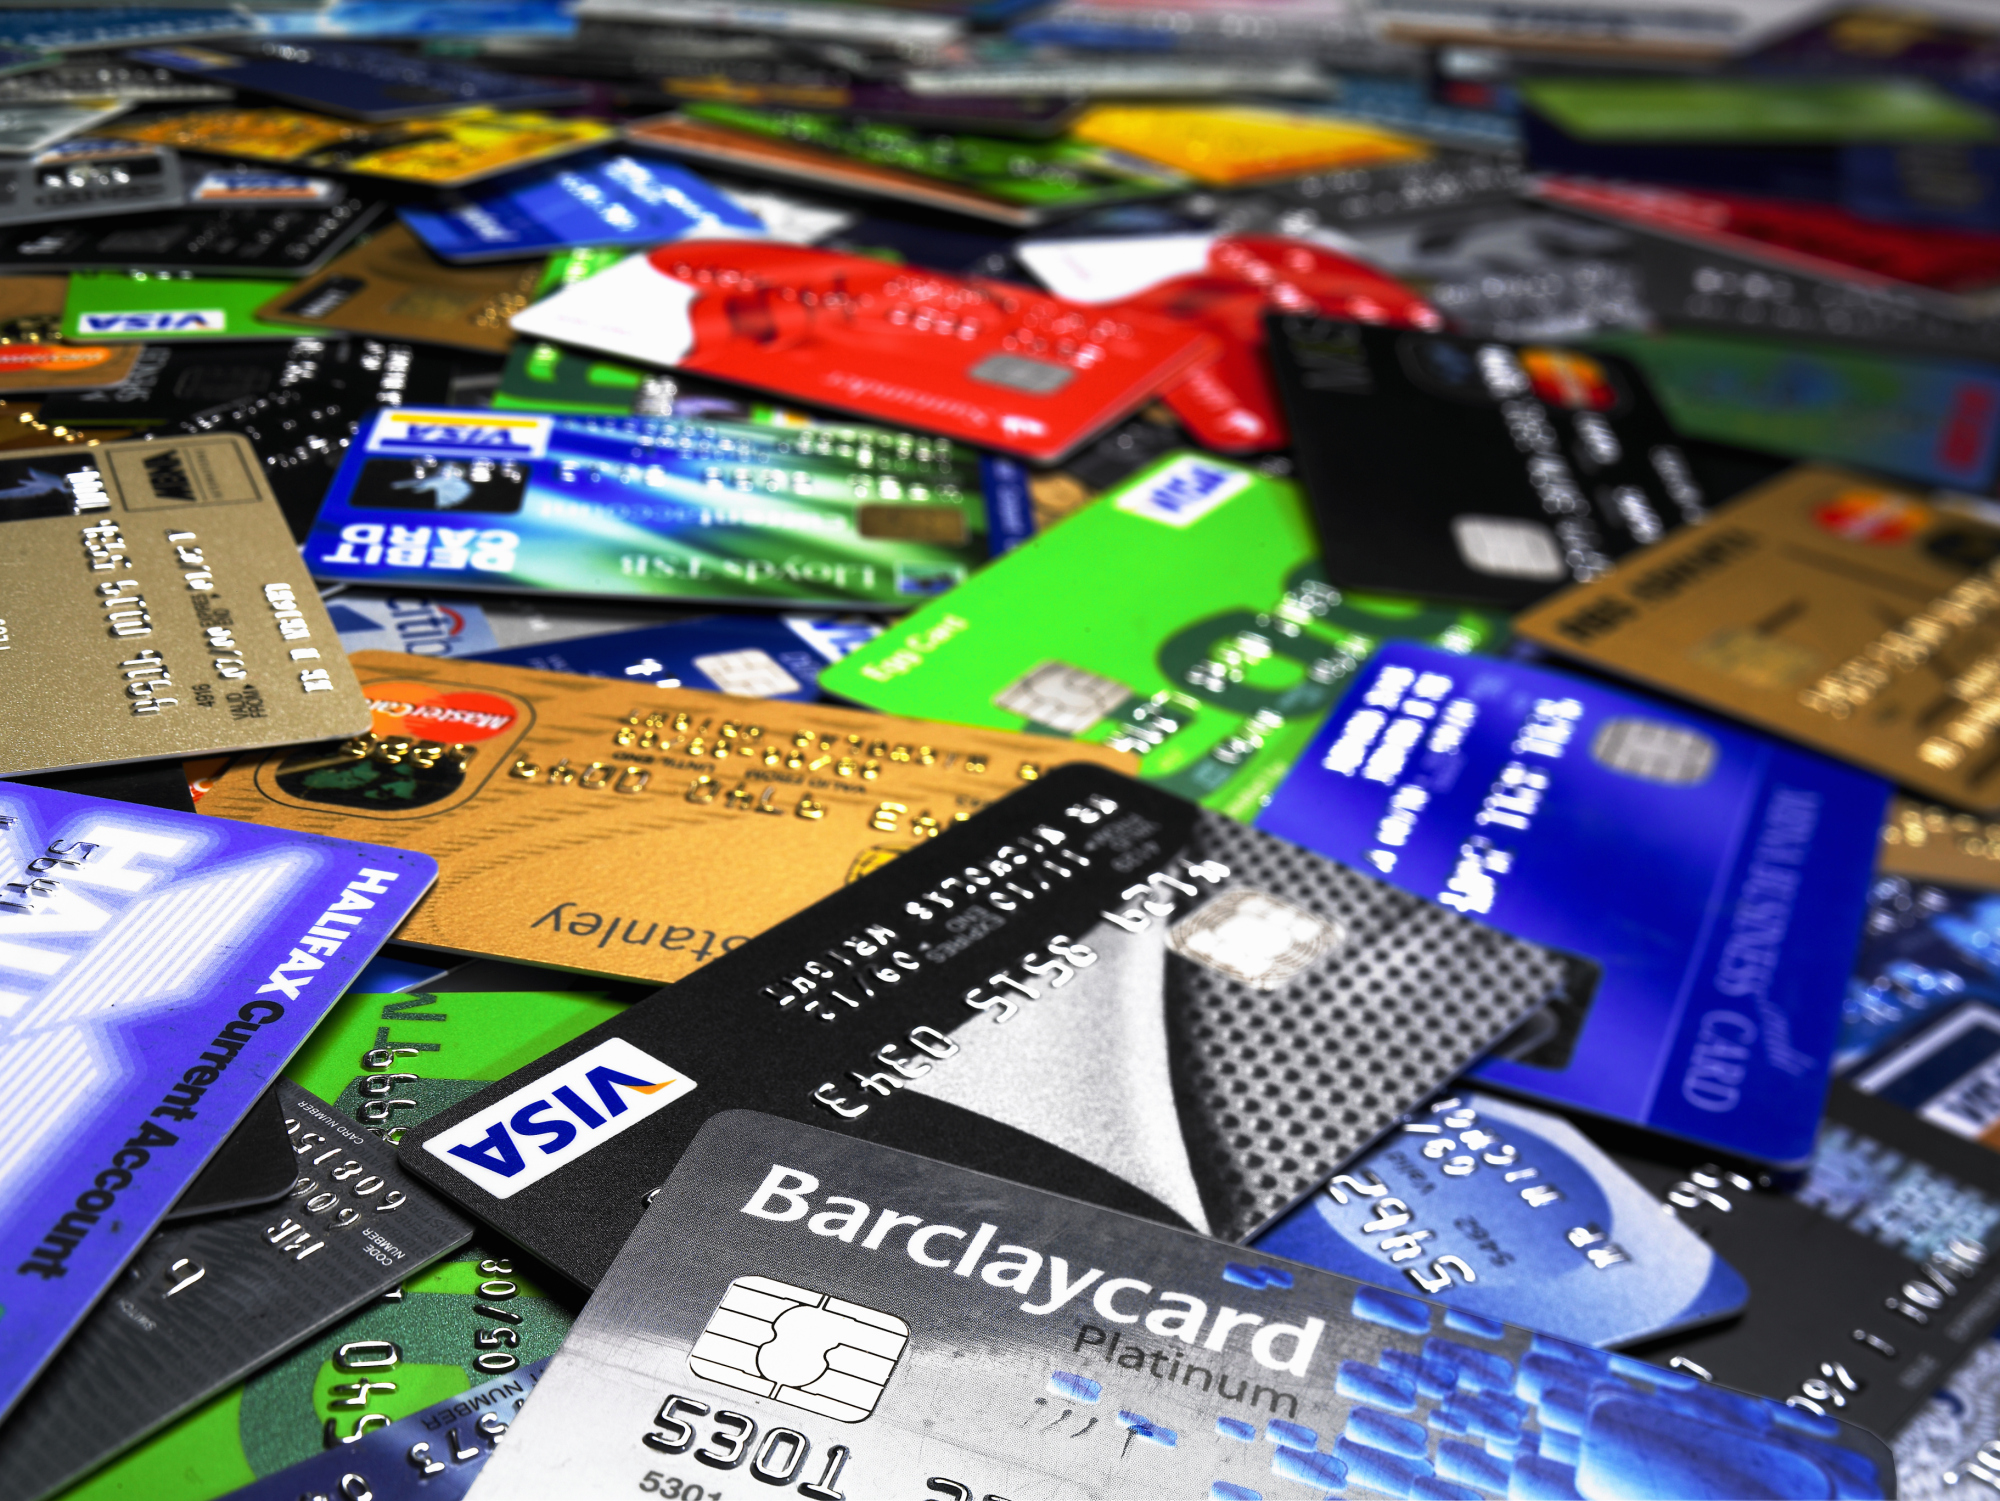 How Can You Instantly Secure Your Debit/Credit Cards Against Fraud?